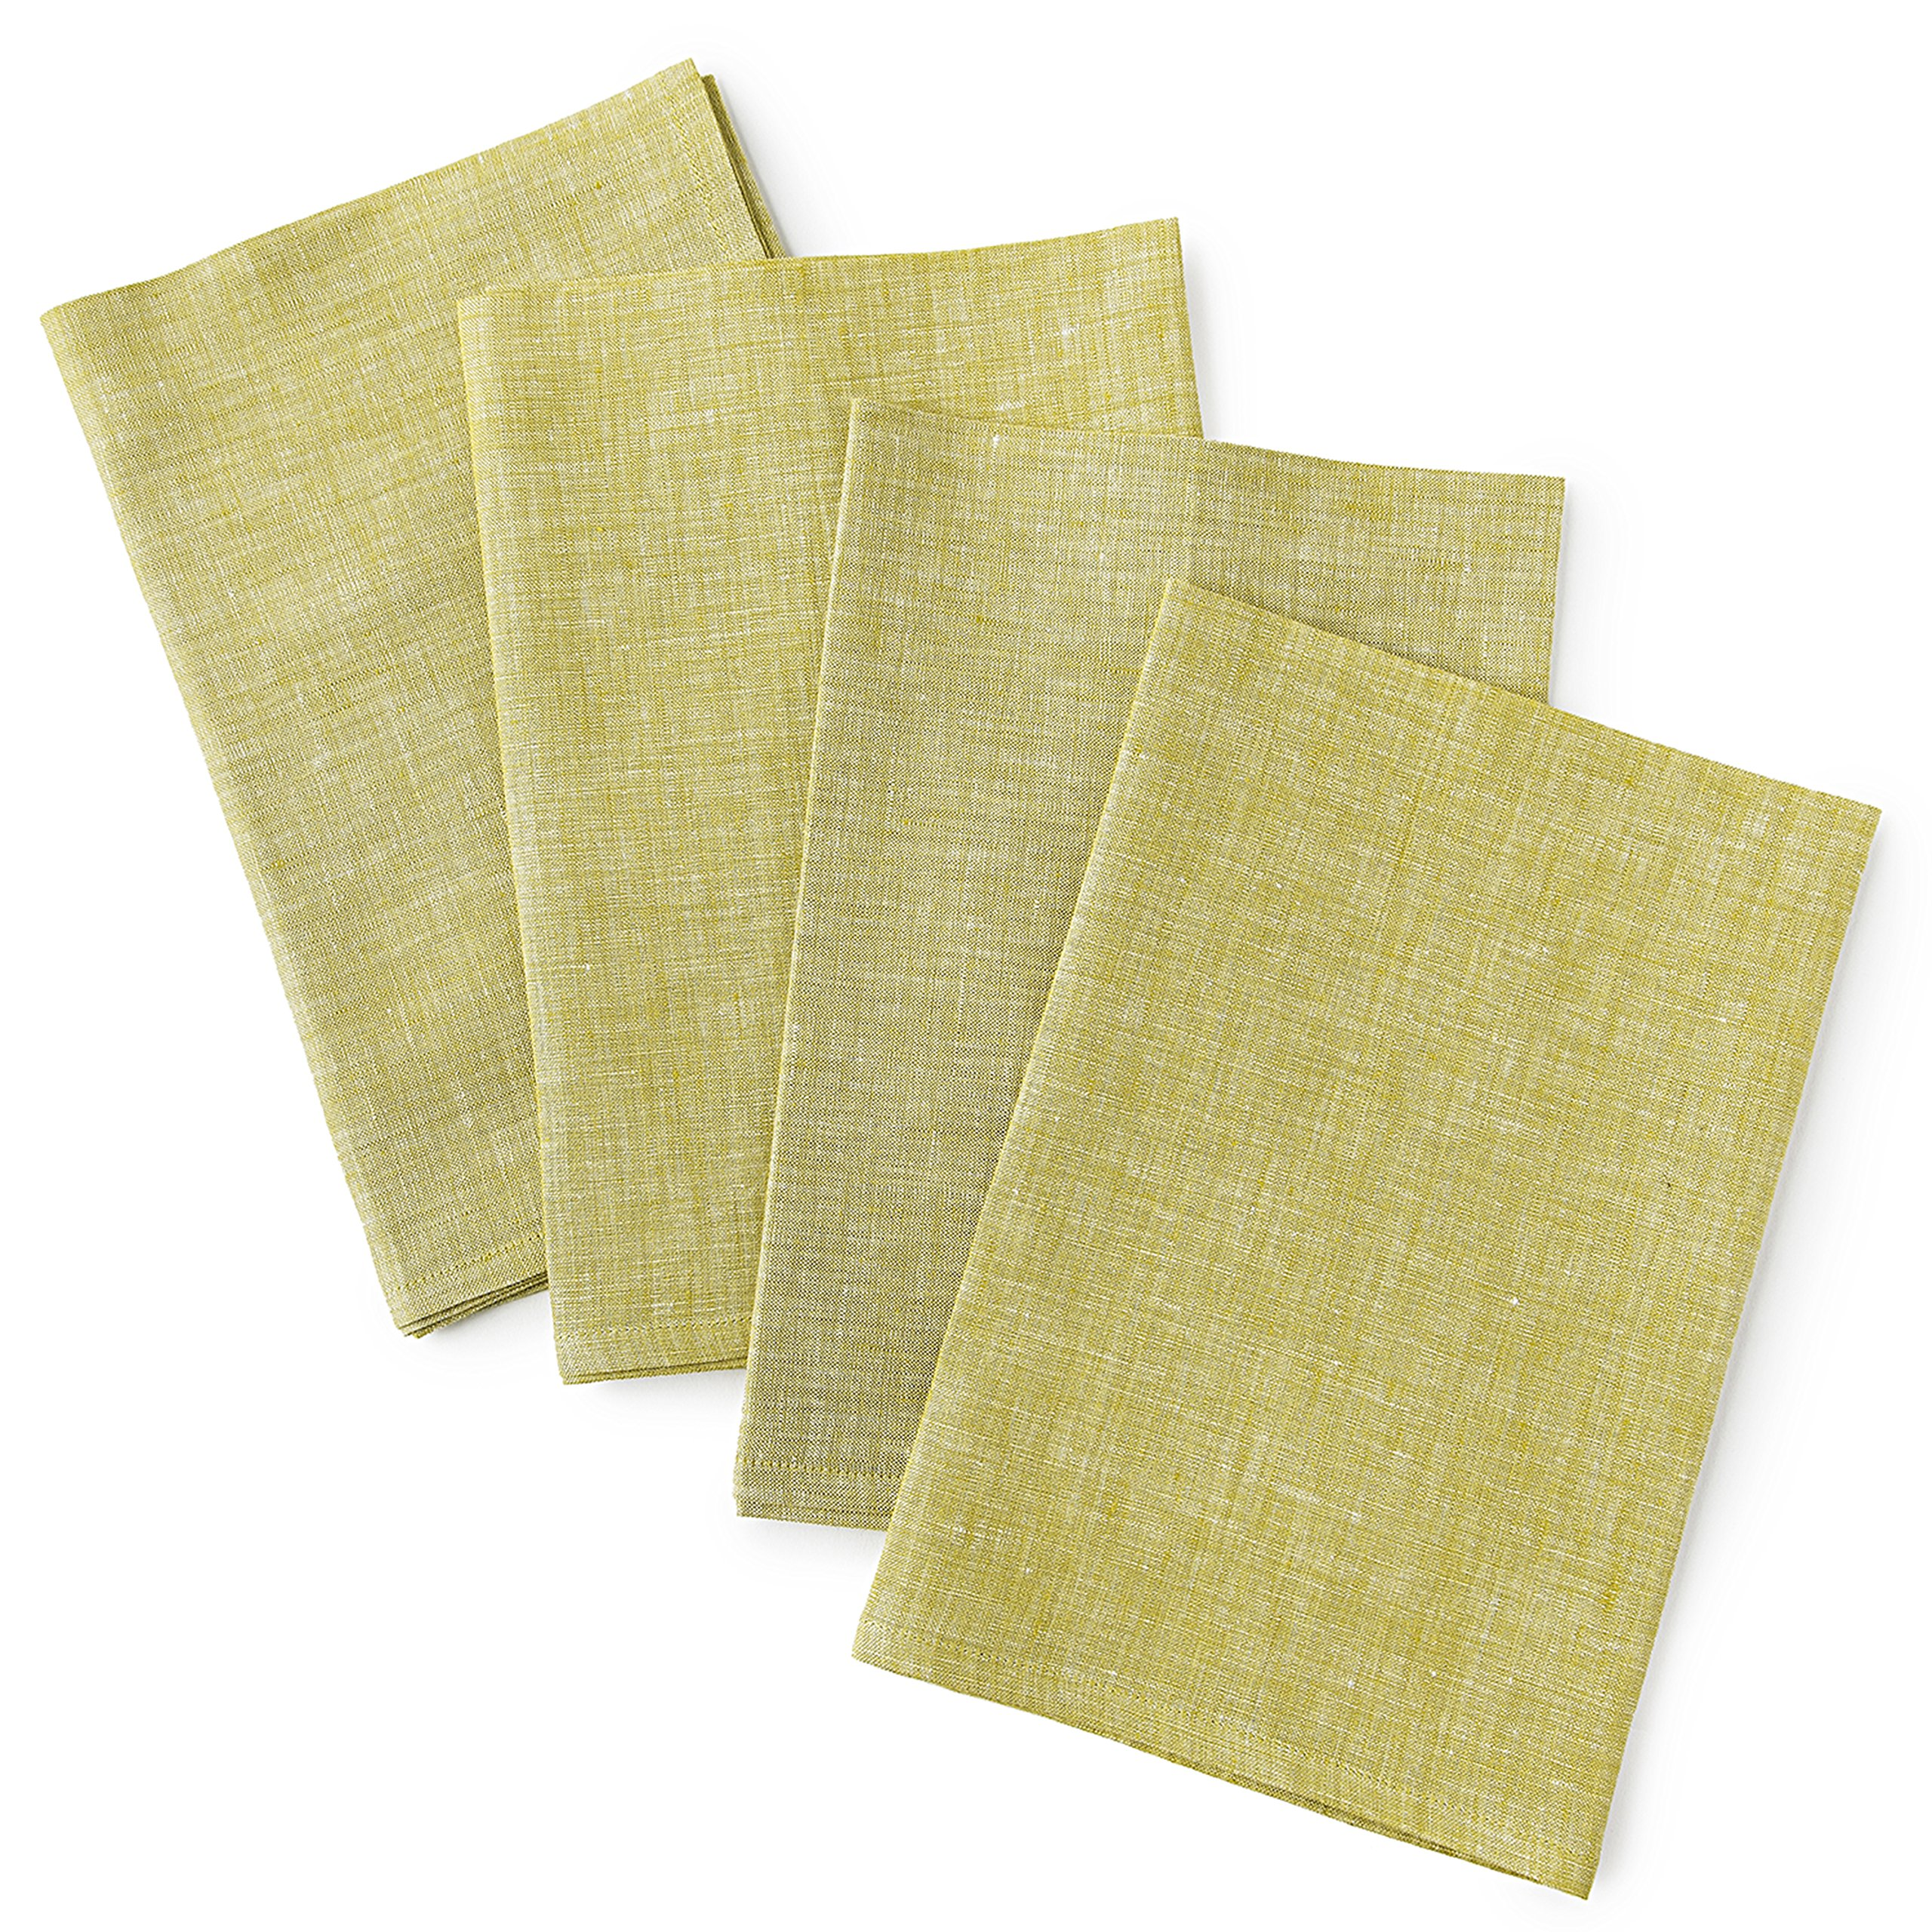 Solino Home Linen Dinner Napkins - 20 x 20 Inch Chambray Olive, 4 Pack Linen Napkins, Bella - 100% European Flax - Soft & Handcrafted with Mitered Corners by Solino Home